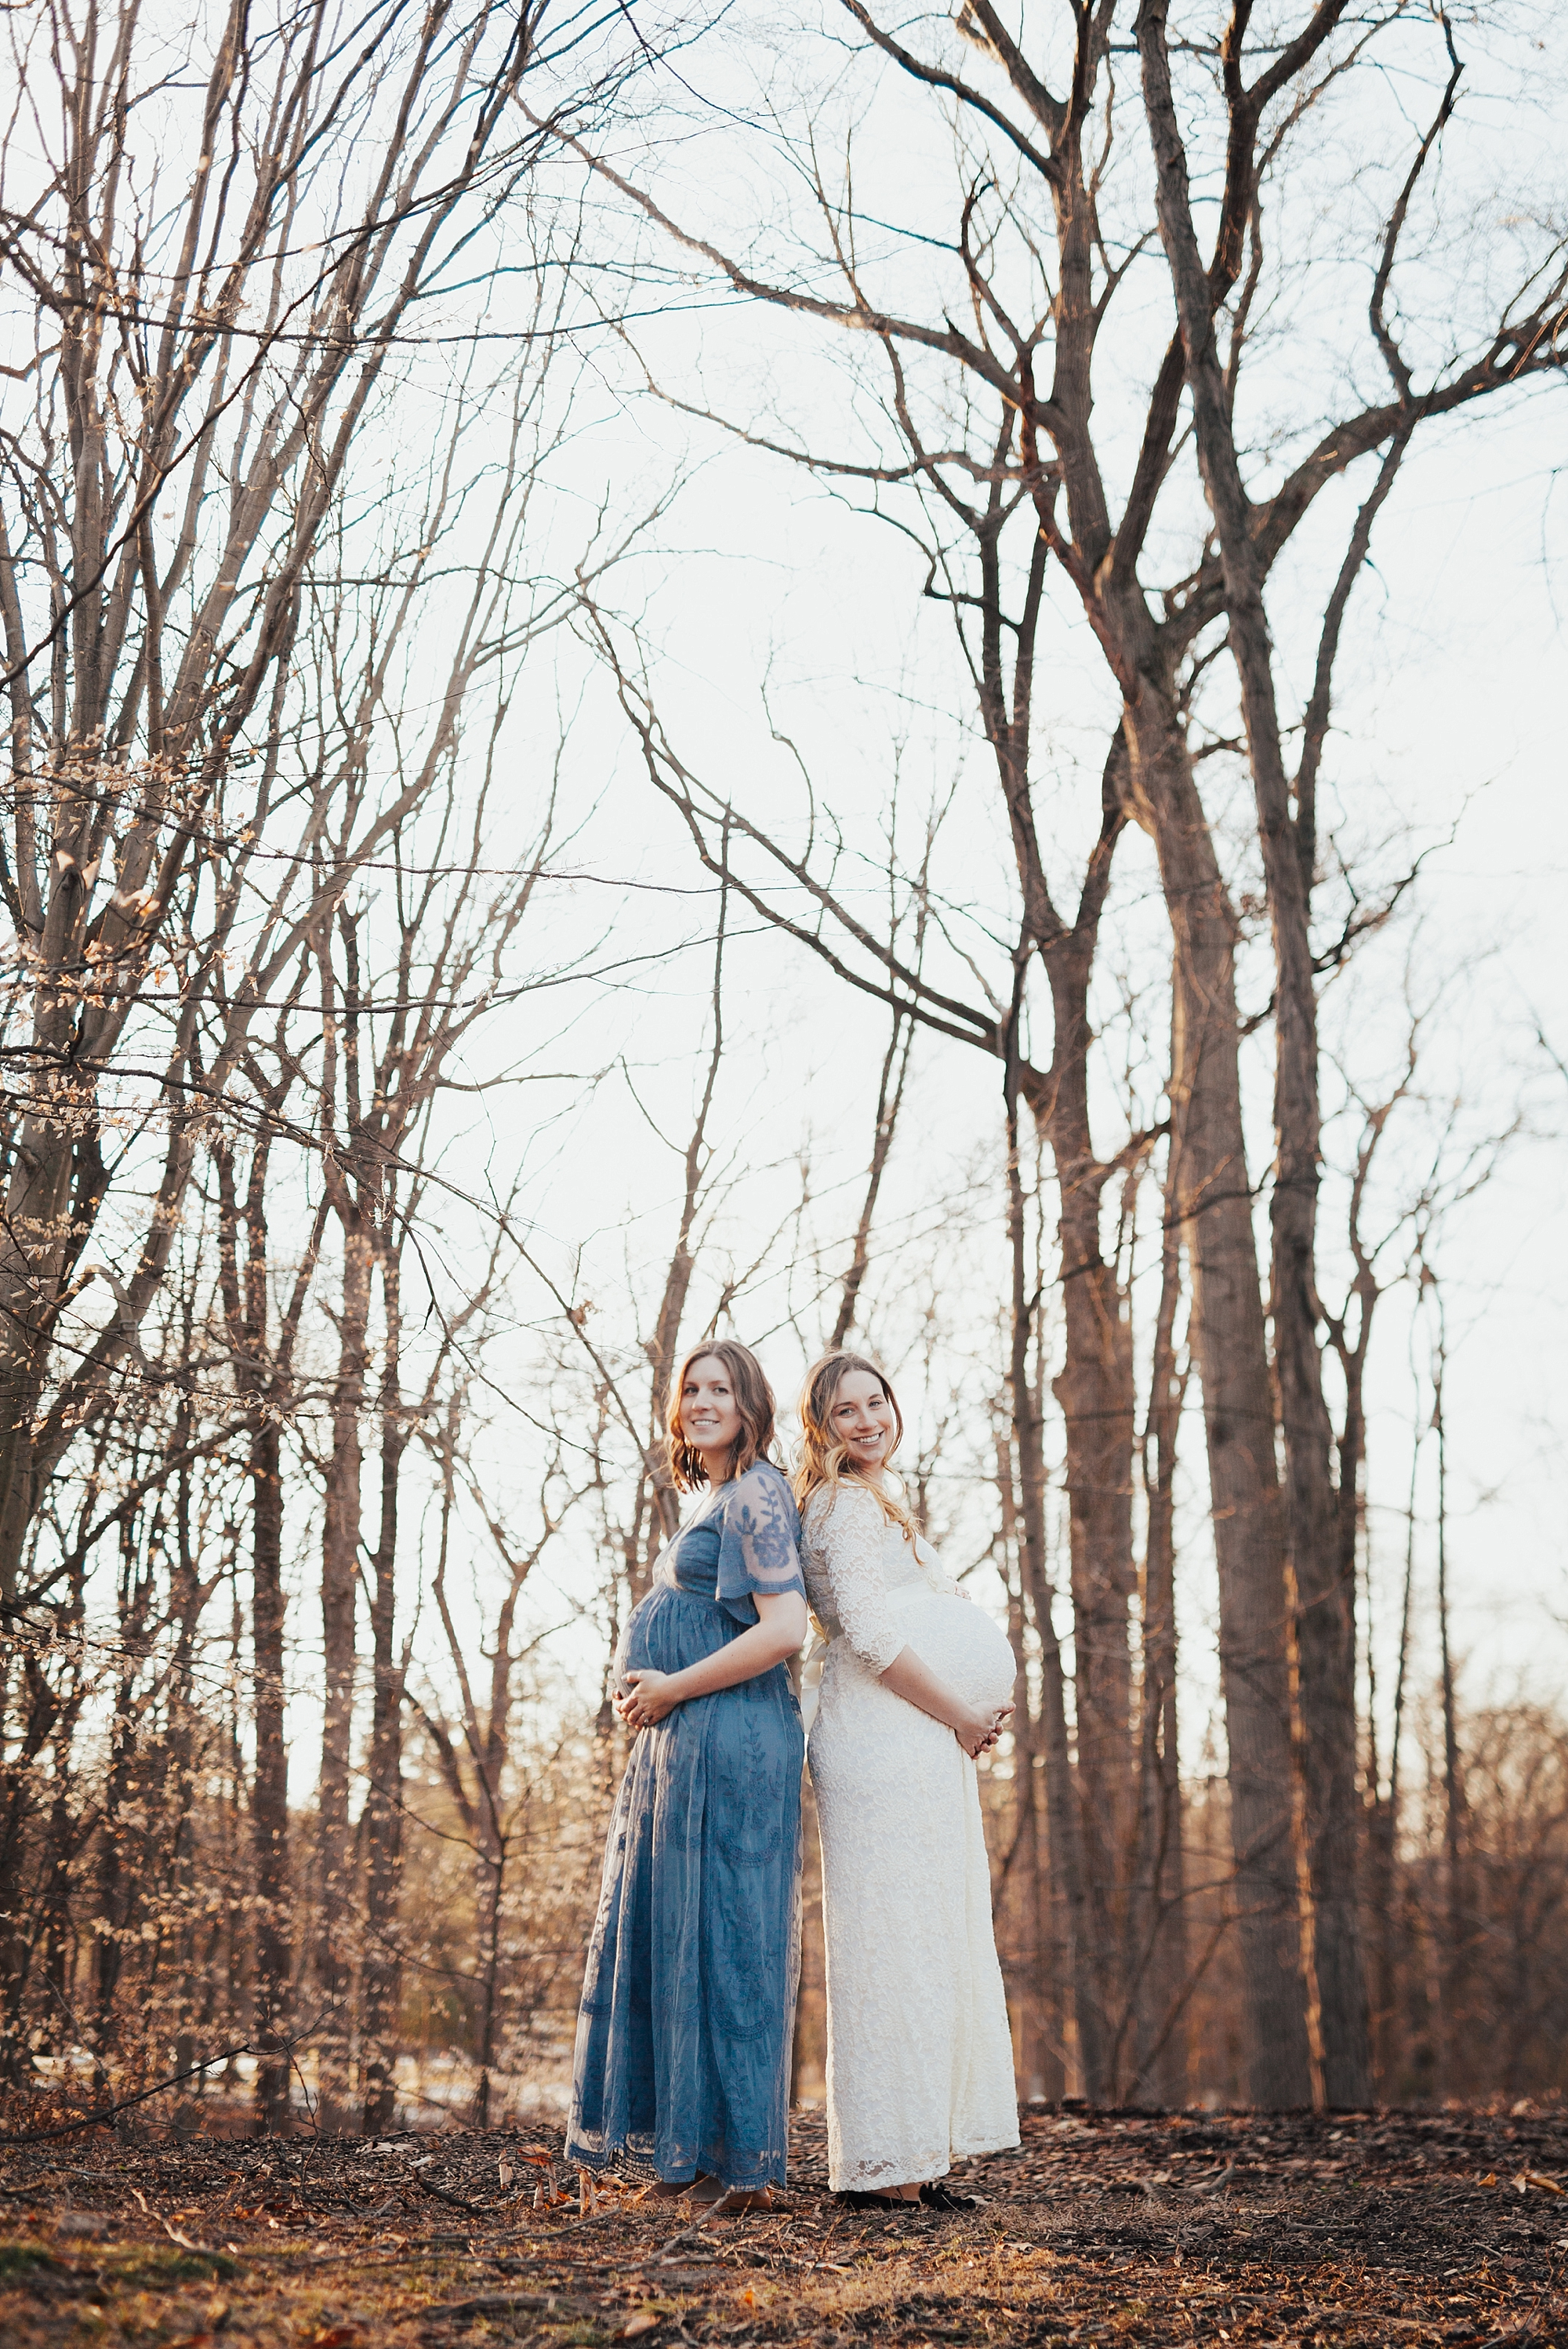 Joe_Mac_Creative_Maternity_Wedding_Engagements_Photography_Philadelphia_Valley_Forge__0047.jpg